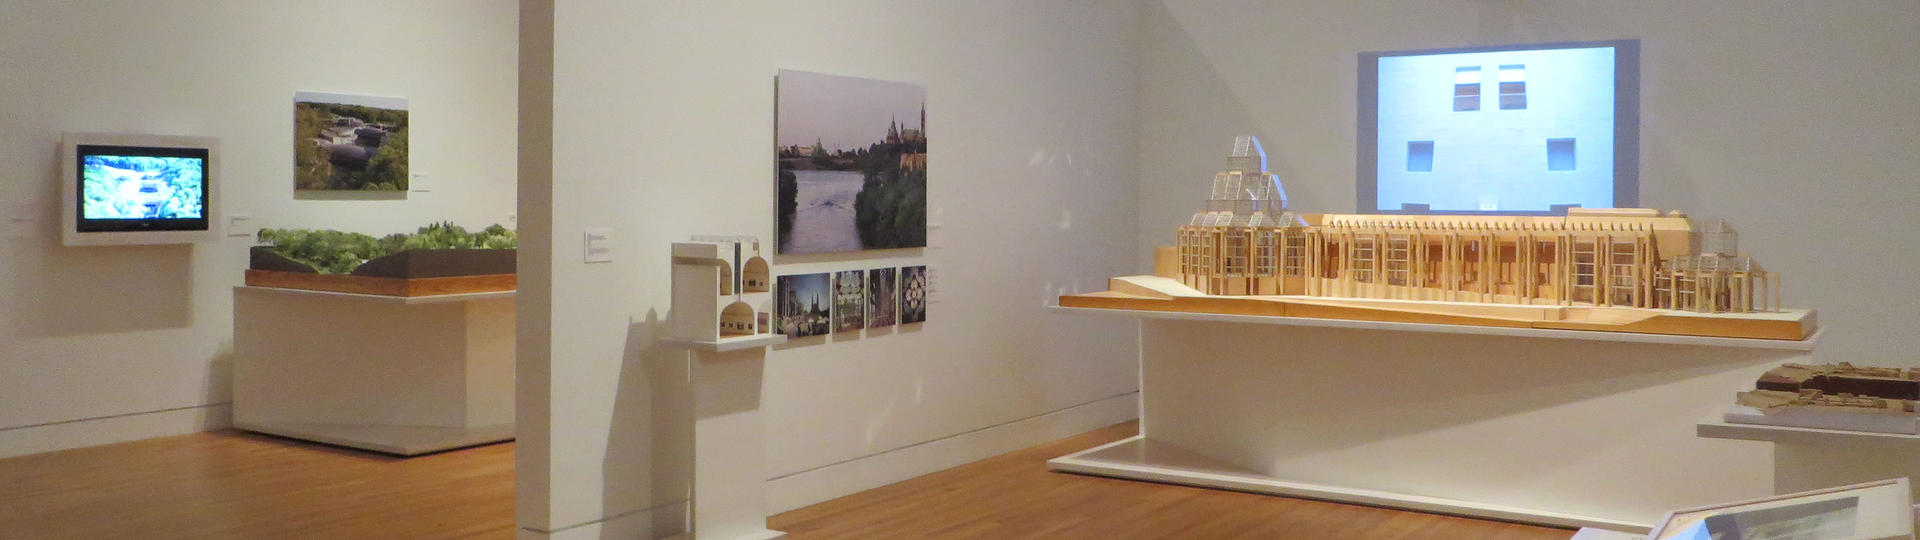 exhibition gallery displaying architectural models and images